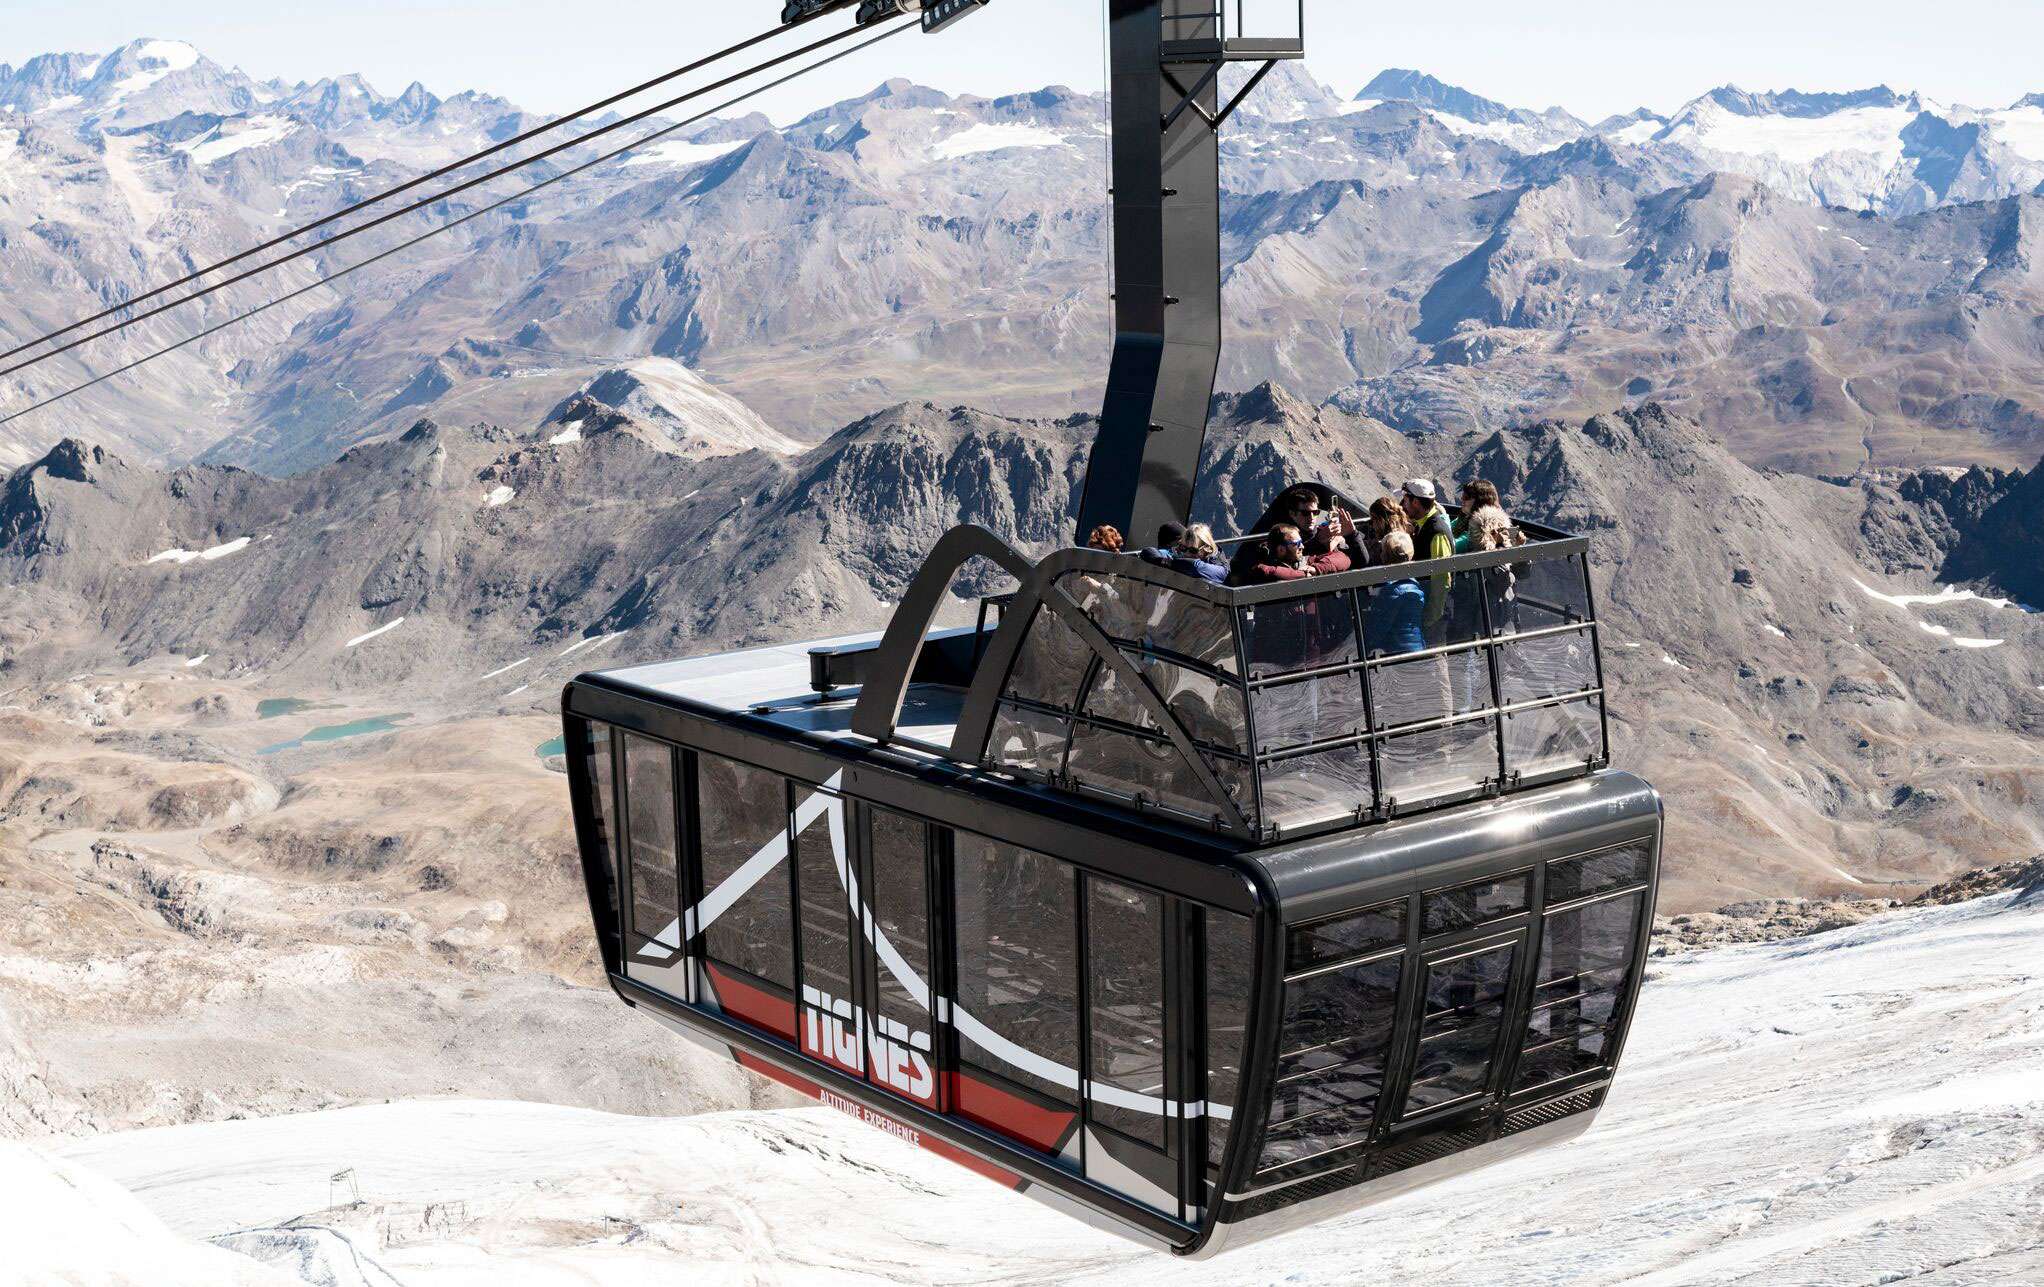 Tignes resort has just inaugurated the largest and highest tramway in the world